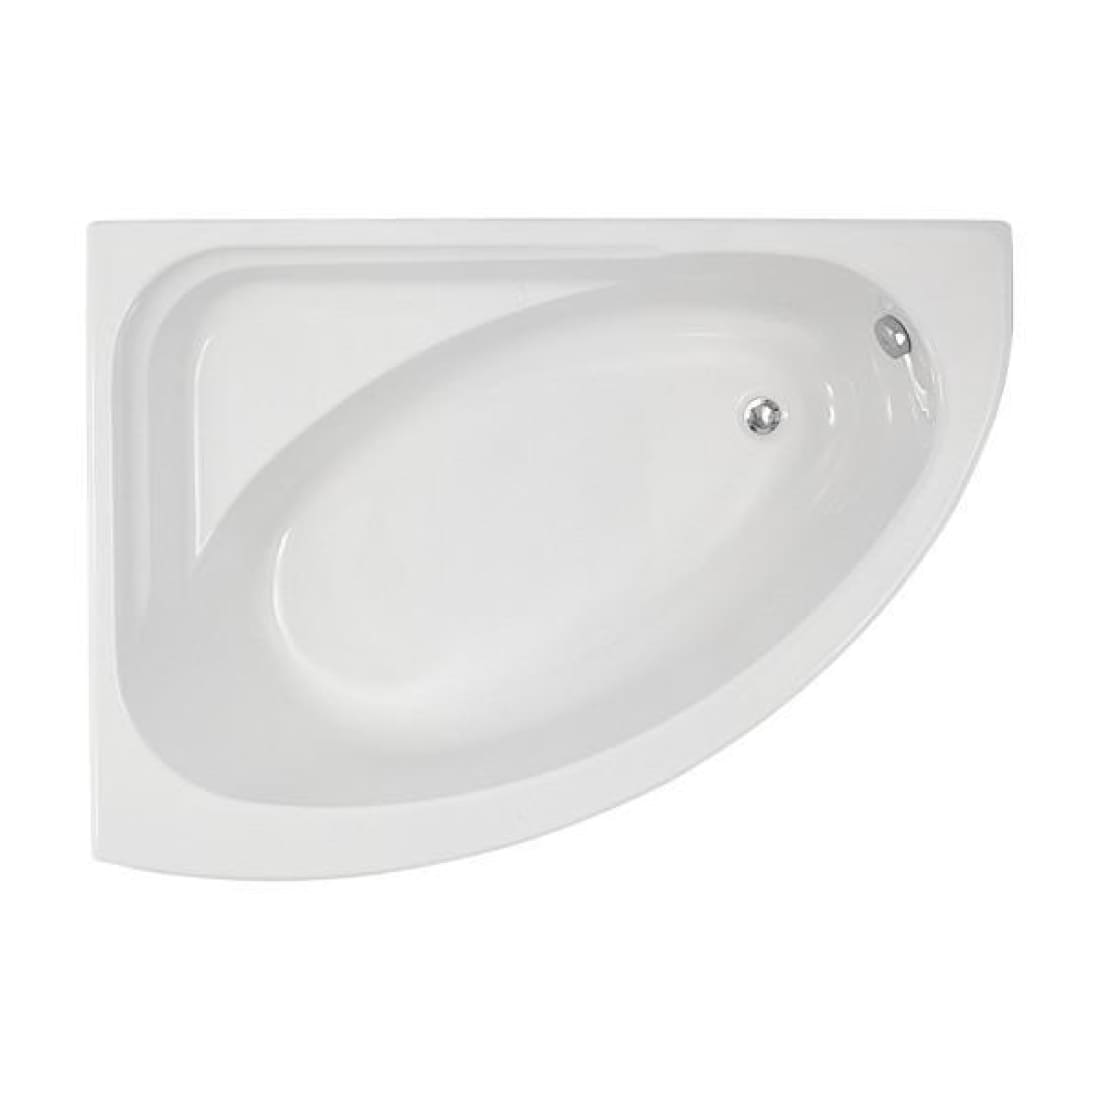 Kartell Options Double Ended Bath